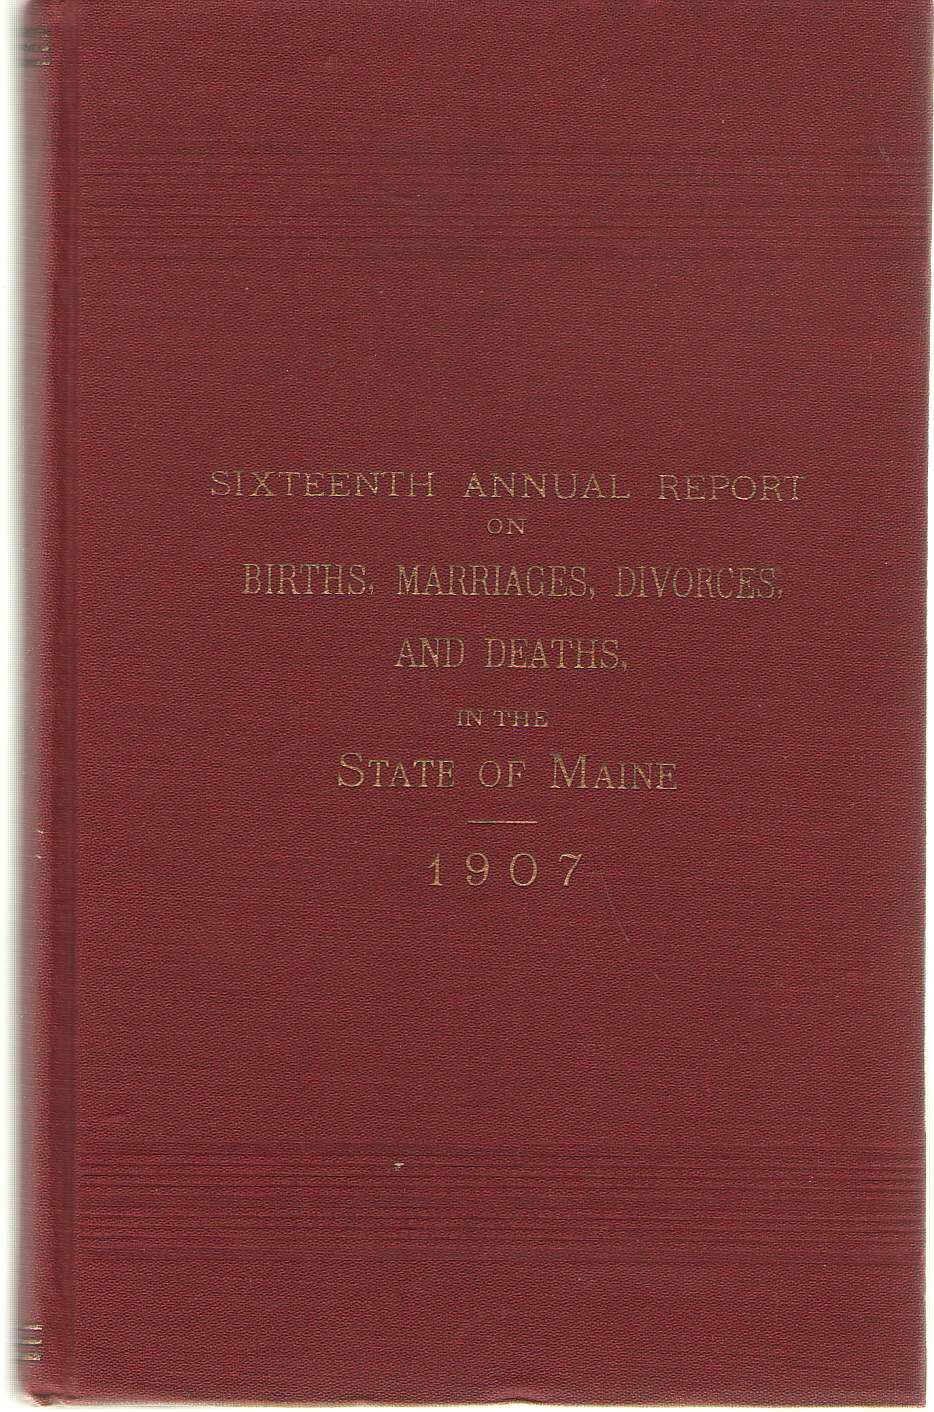 Image for Sixteenth Annual Report On Births, Marriages, Divorces, And Deaths, In The State Of Maine For The Year Ending December 31, 1907